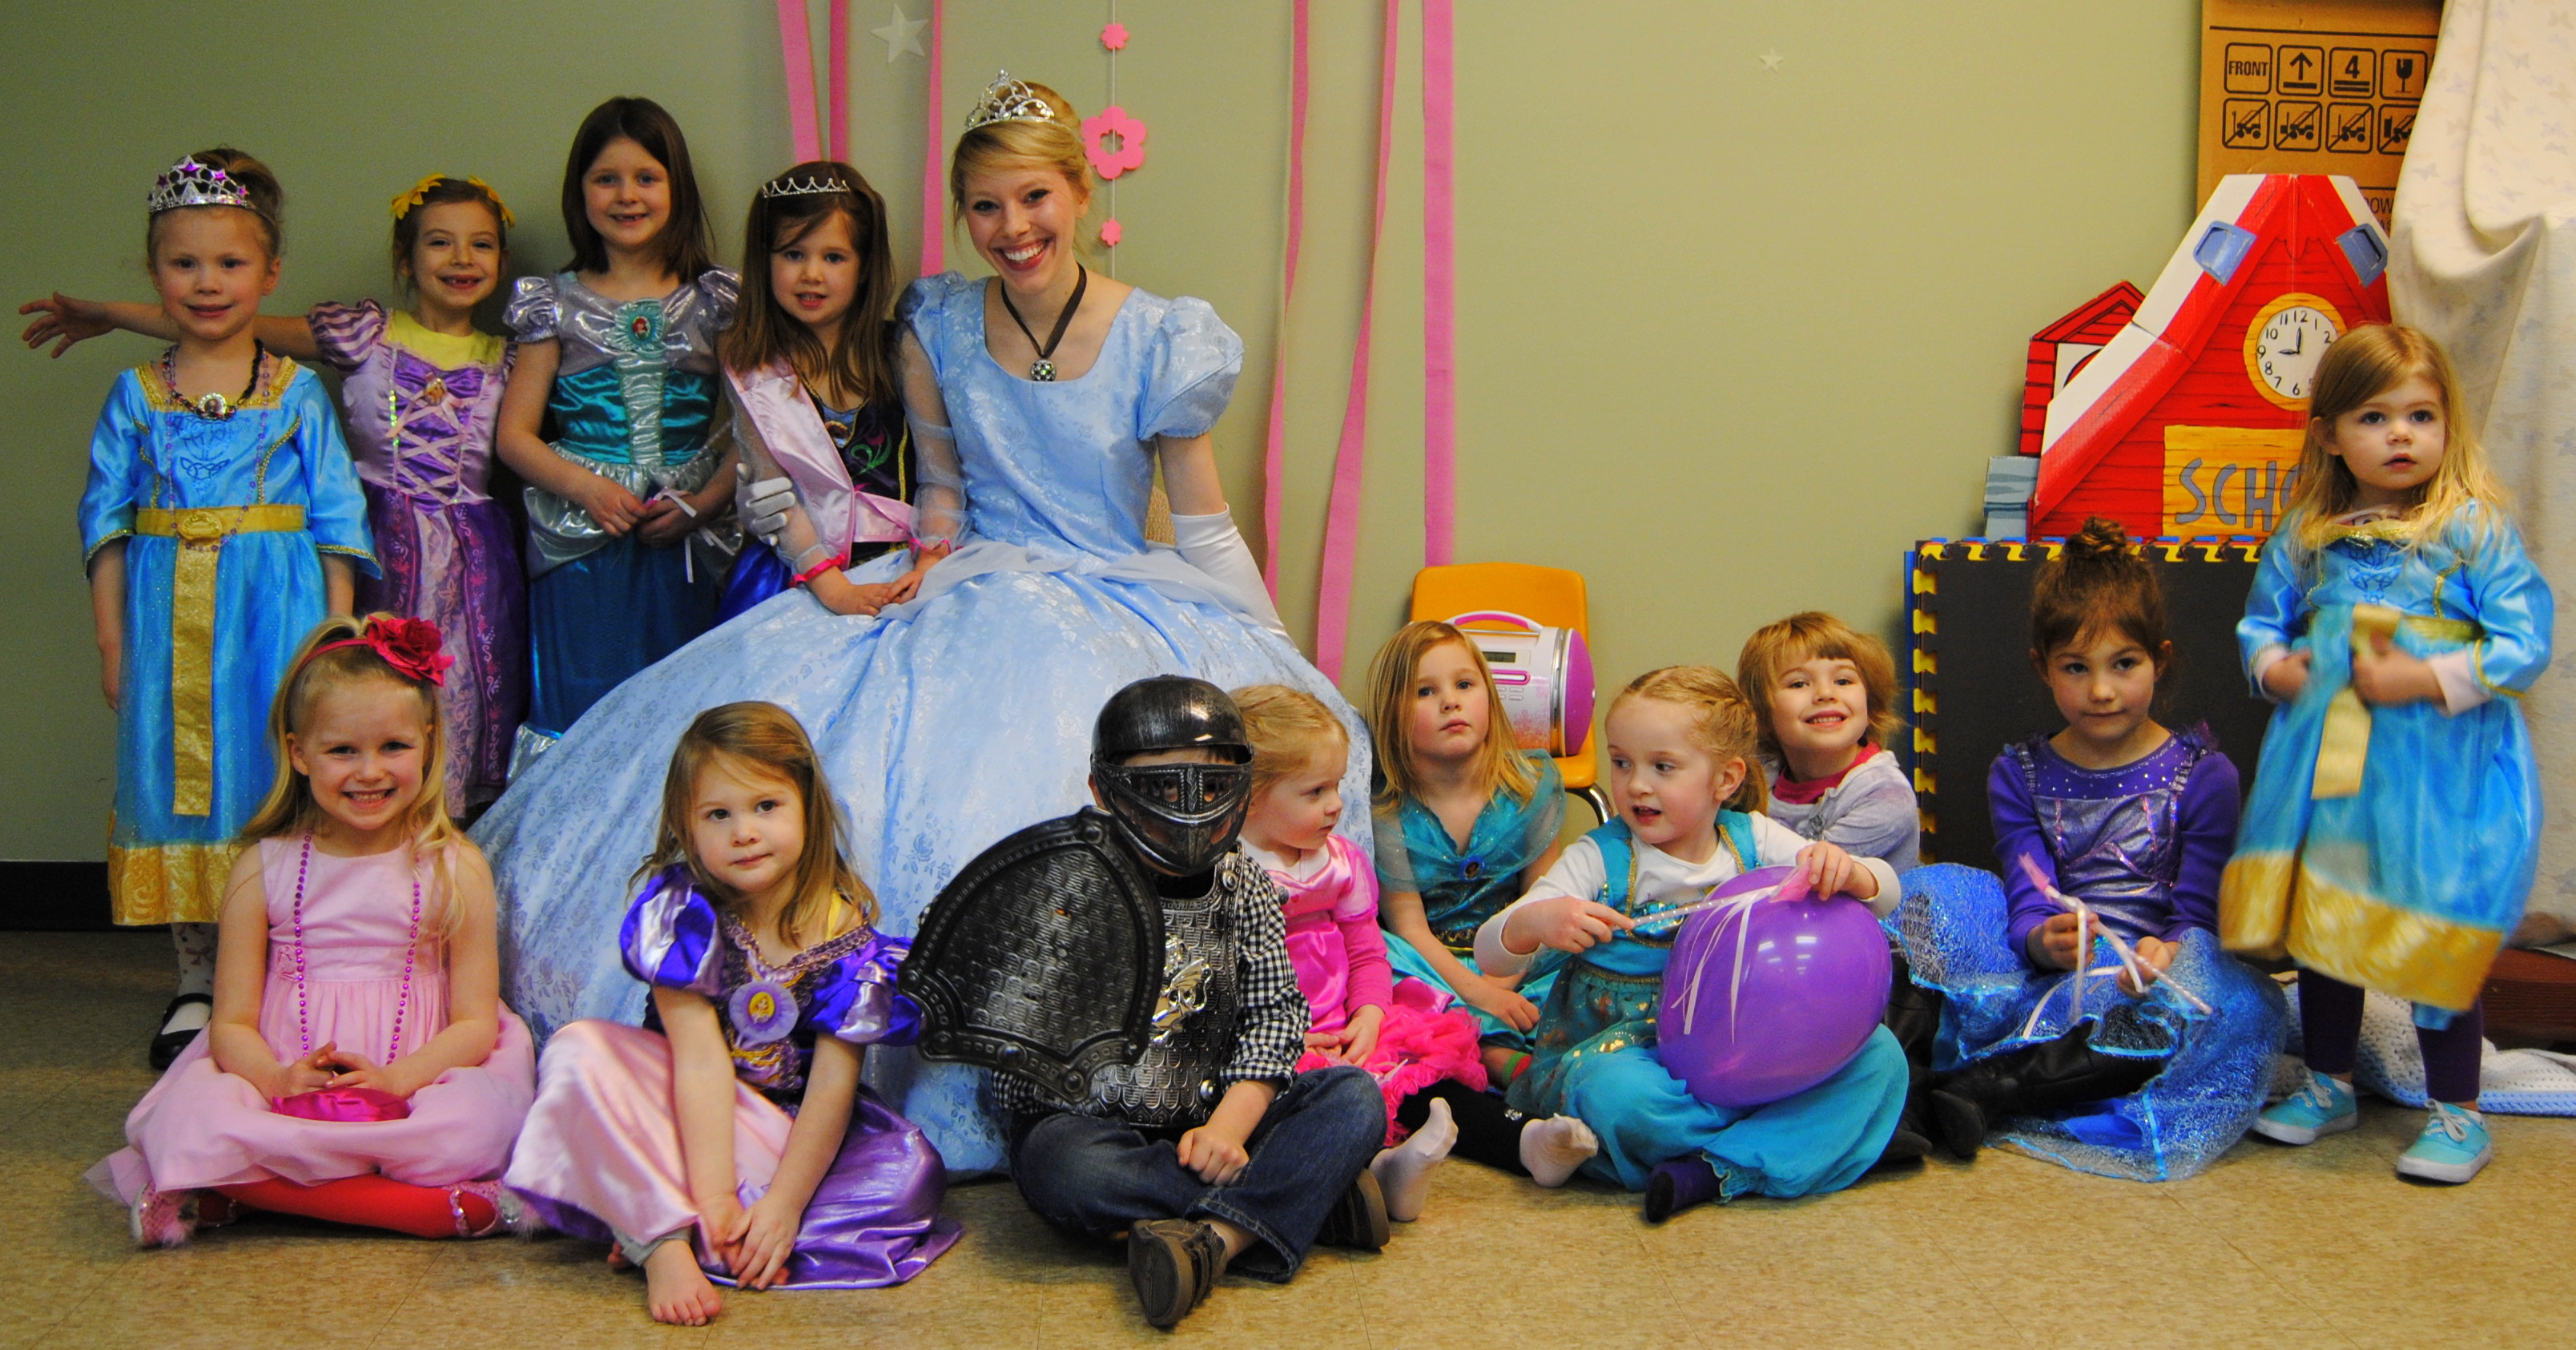 princess birthday party ideas // Enchanted Princess Party